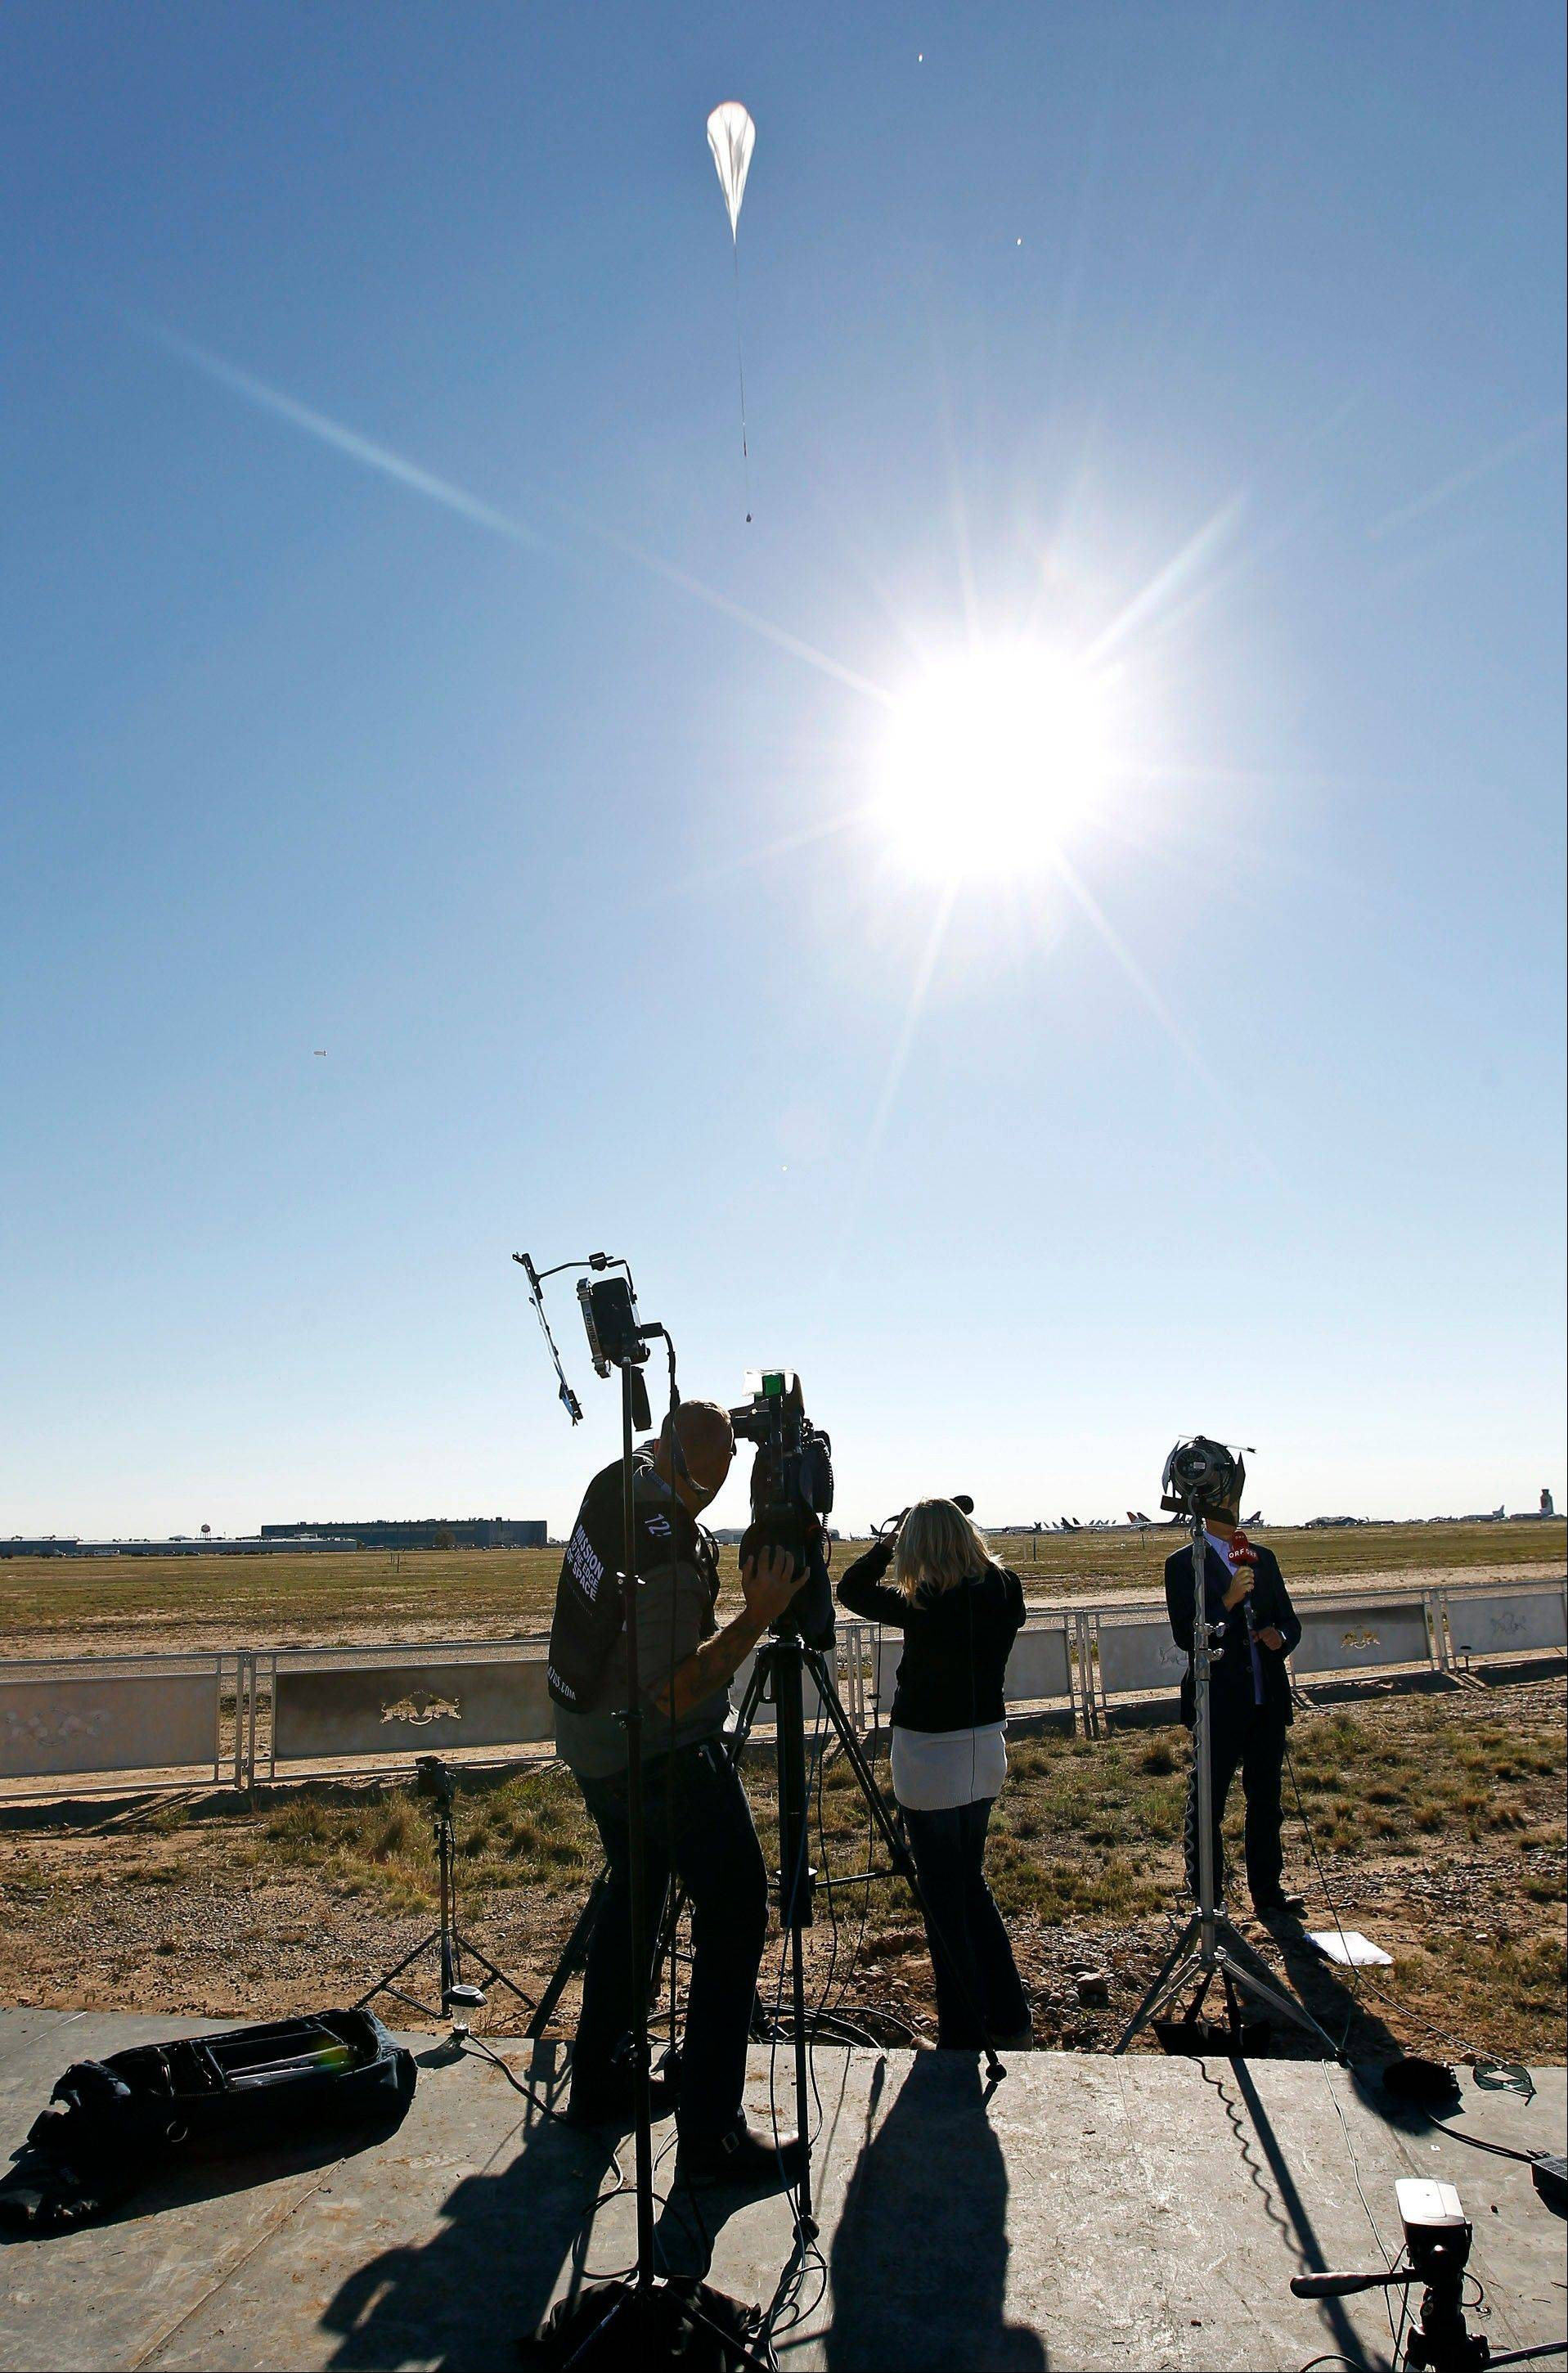 A television crew films the capsule and attached helium balloon, at top of frame, carrying Felix Baumgartner lifting off as he attempts to break the speed of sound with his own body by jumping from a space capsule lifted by a helium balloon, Sunday, Oct. 14, 2012, in Roswell, N.M. Baumgartner plans to jump from an altitude of 120,000 feet, an altitude chosen to enable him to achieve Mach 1 in free fall, which would deliver scientific data to the aerospace community about human survival from high altitudes.